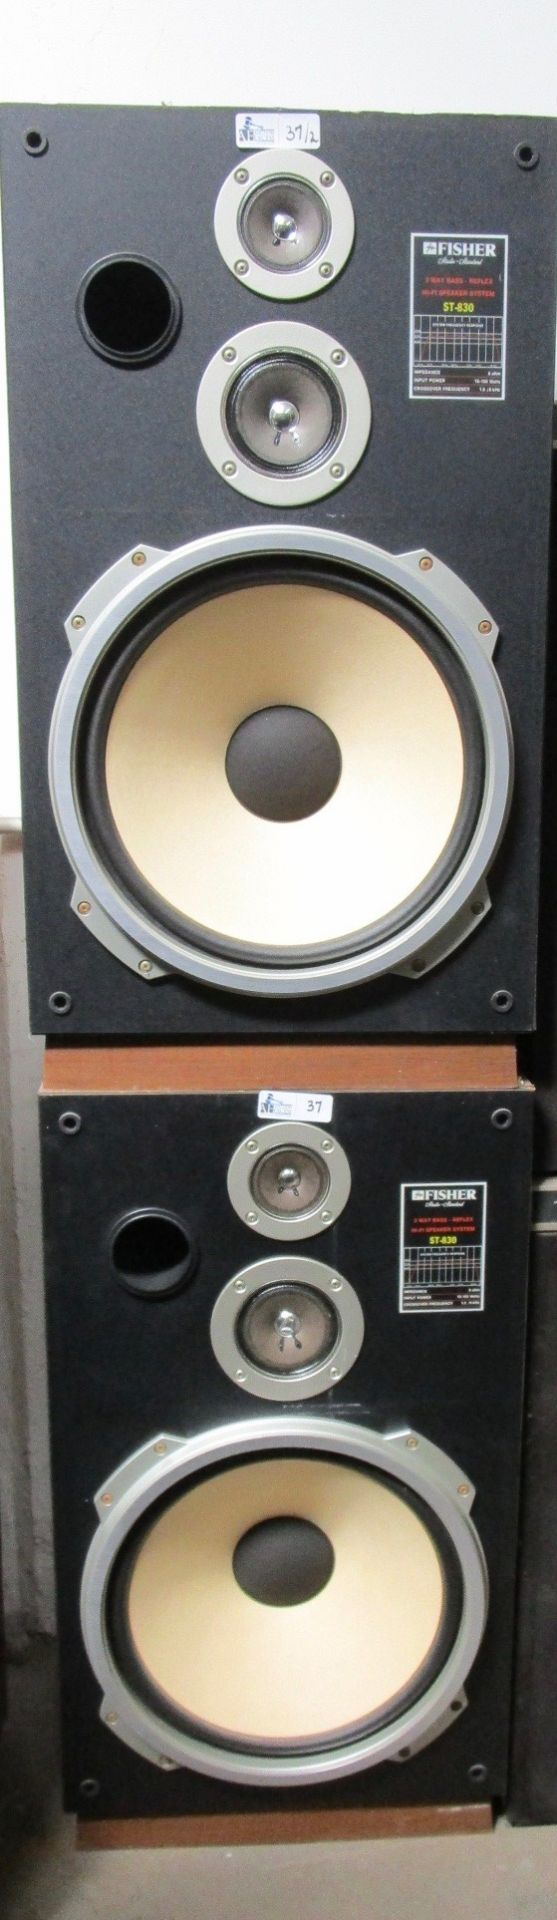 Lot 37 - LOT OF 2 FISHER ST-830 3-WAY SPEAKERS